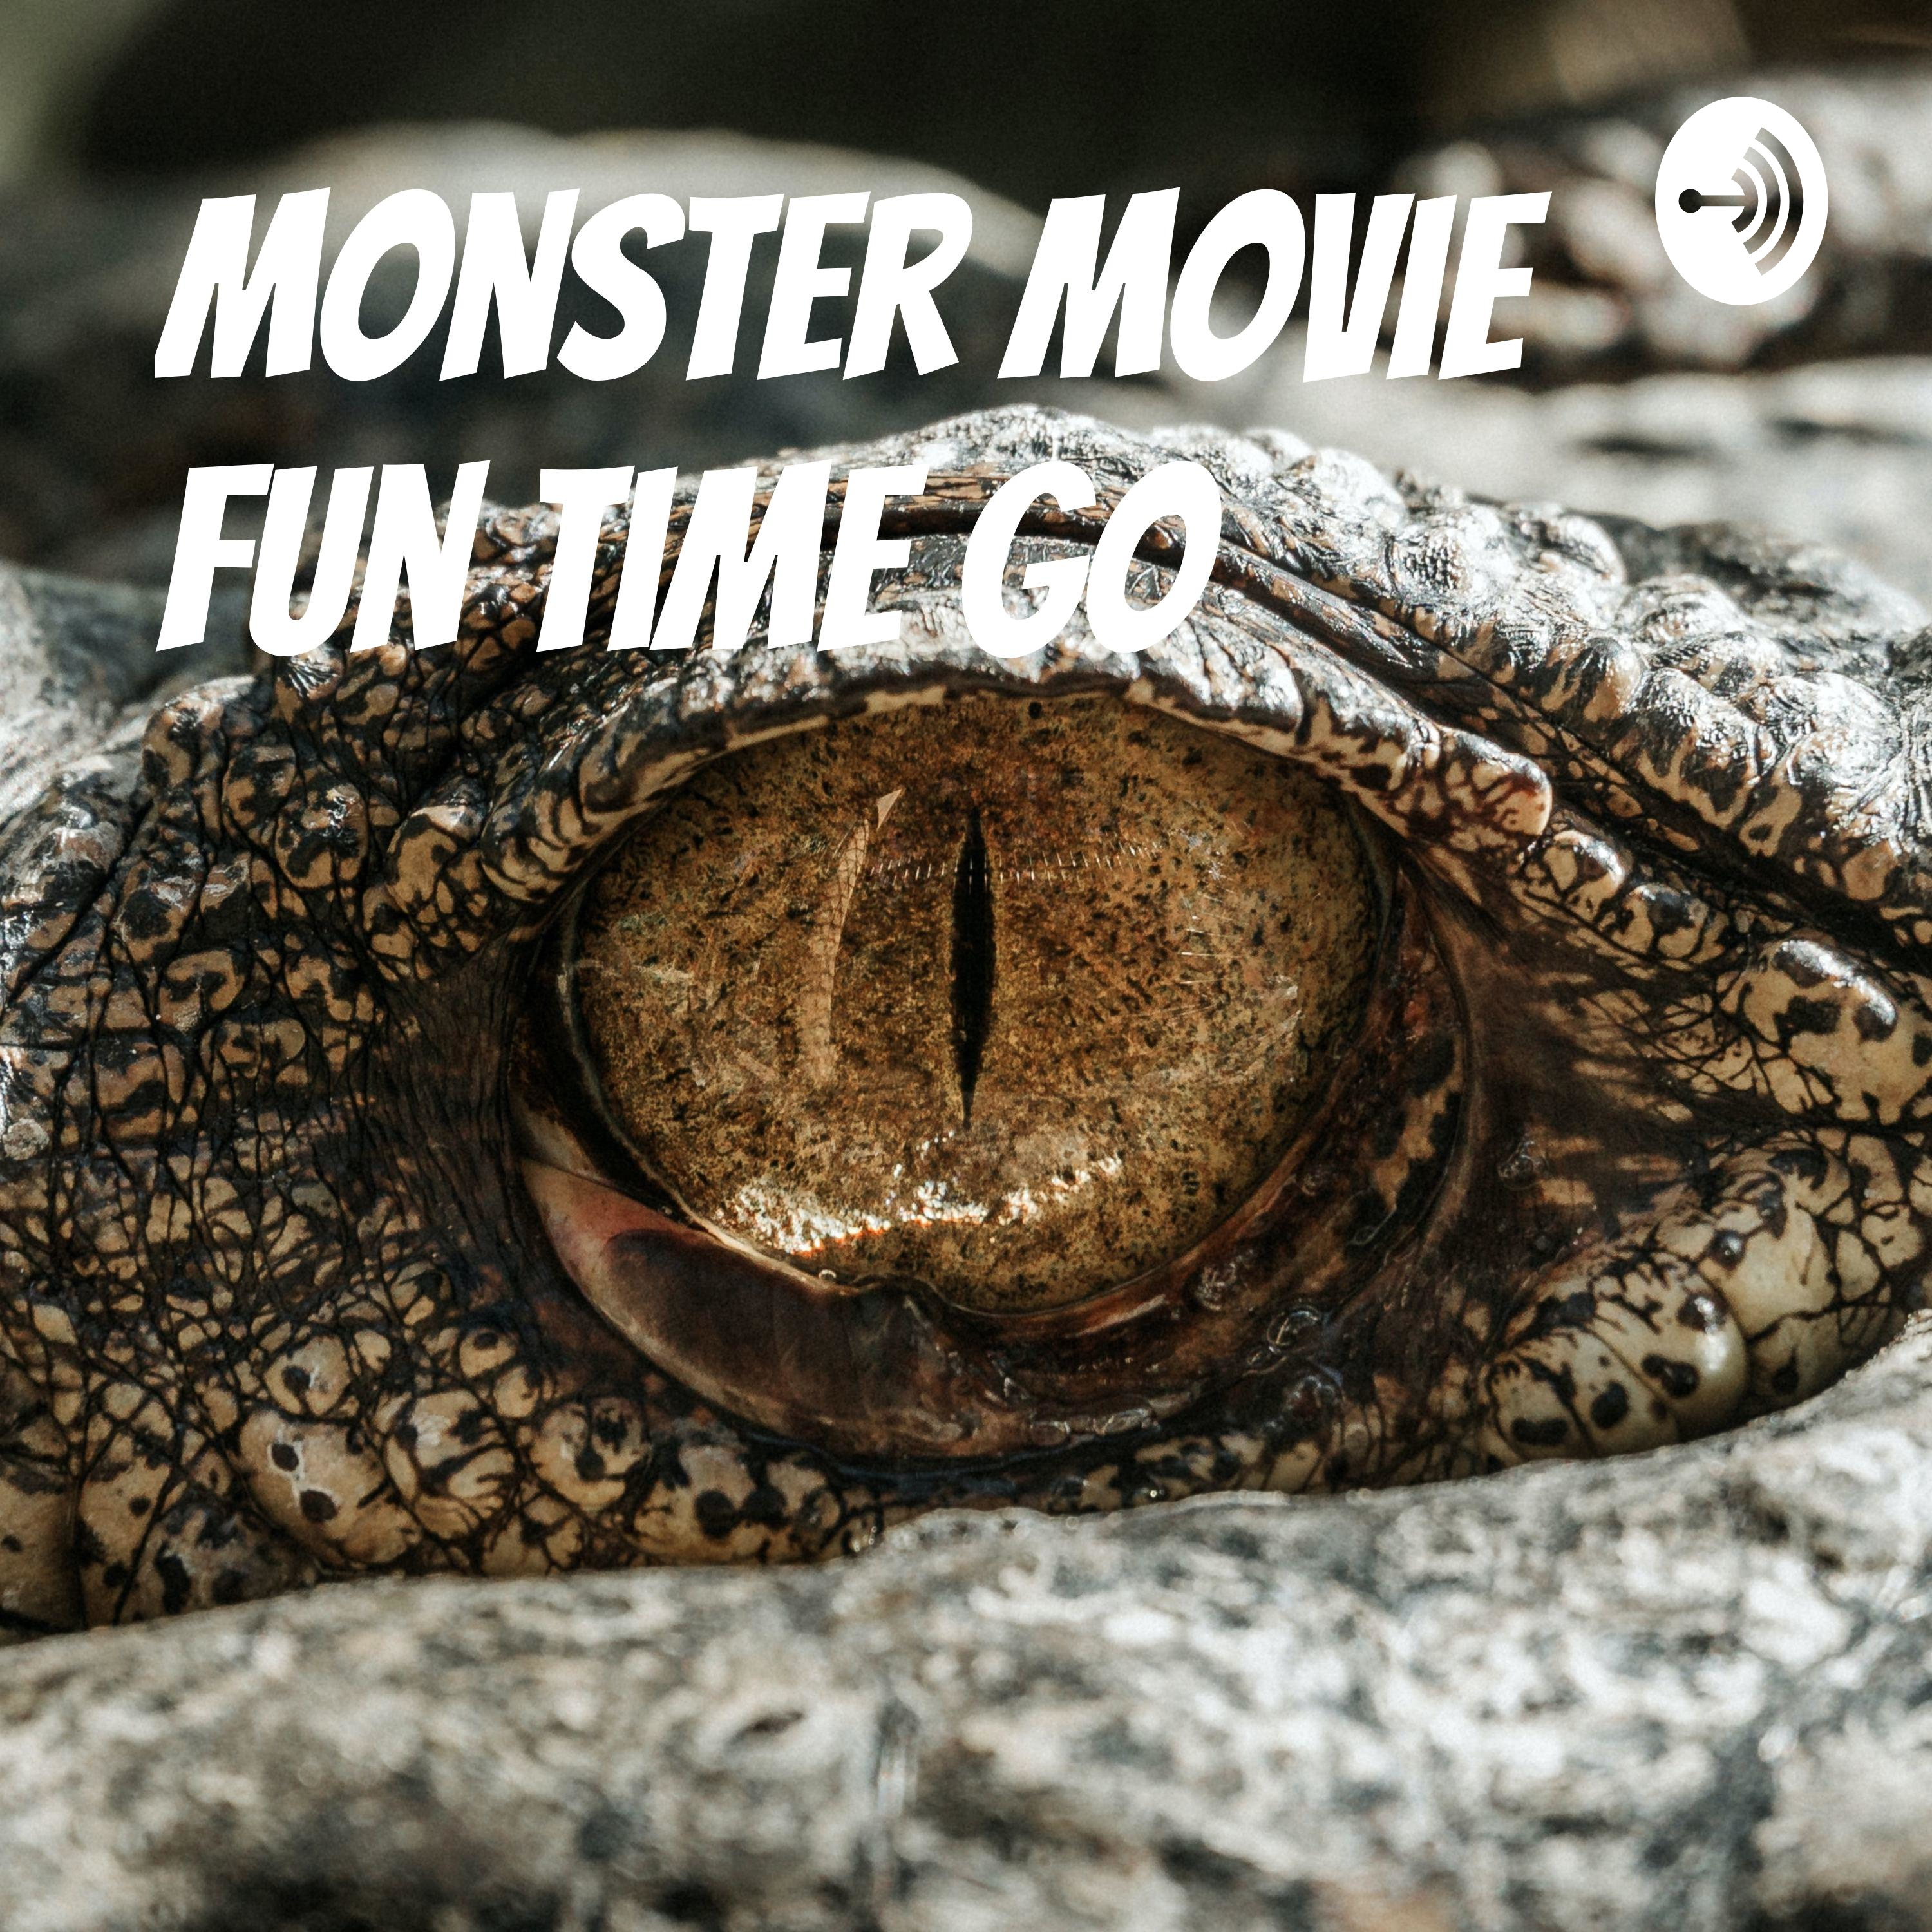 """Fresh update on """"sam """" discussed on Monster Movie Fun Time Go"""